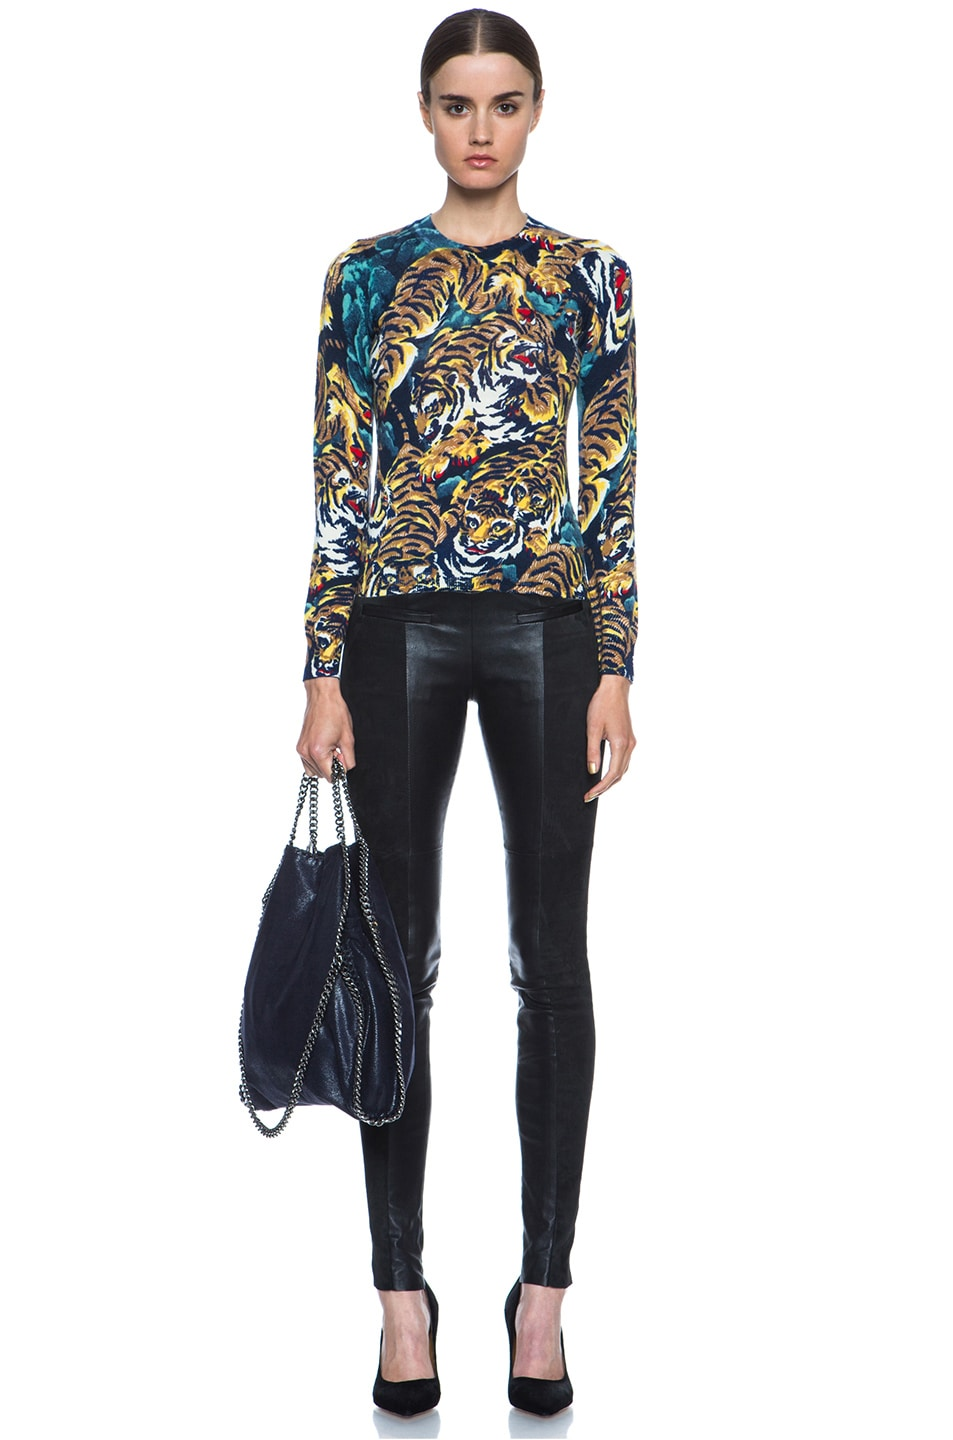 596e6a41 Image 5 of Kenzo Flying Tiger Print Wool Sweater in Bleu Nuit